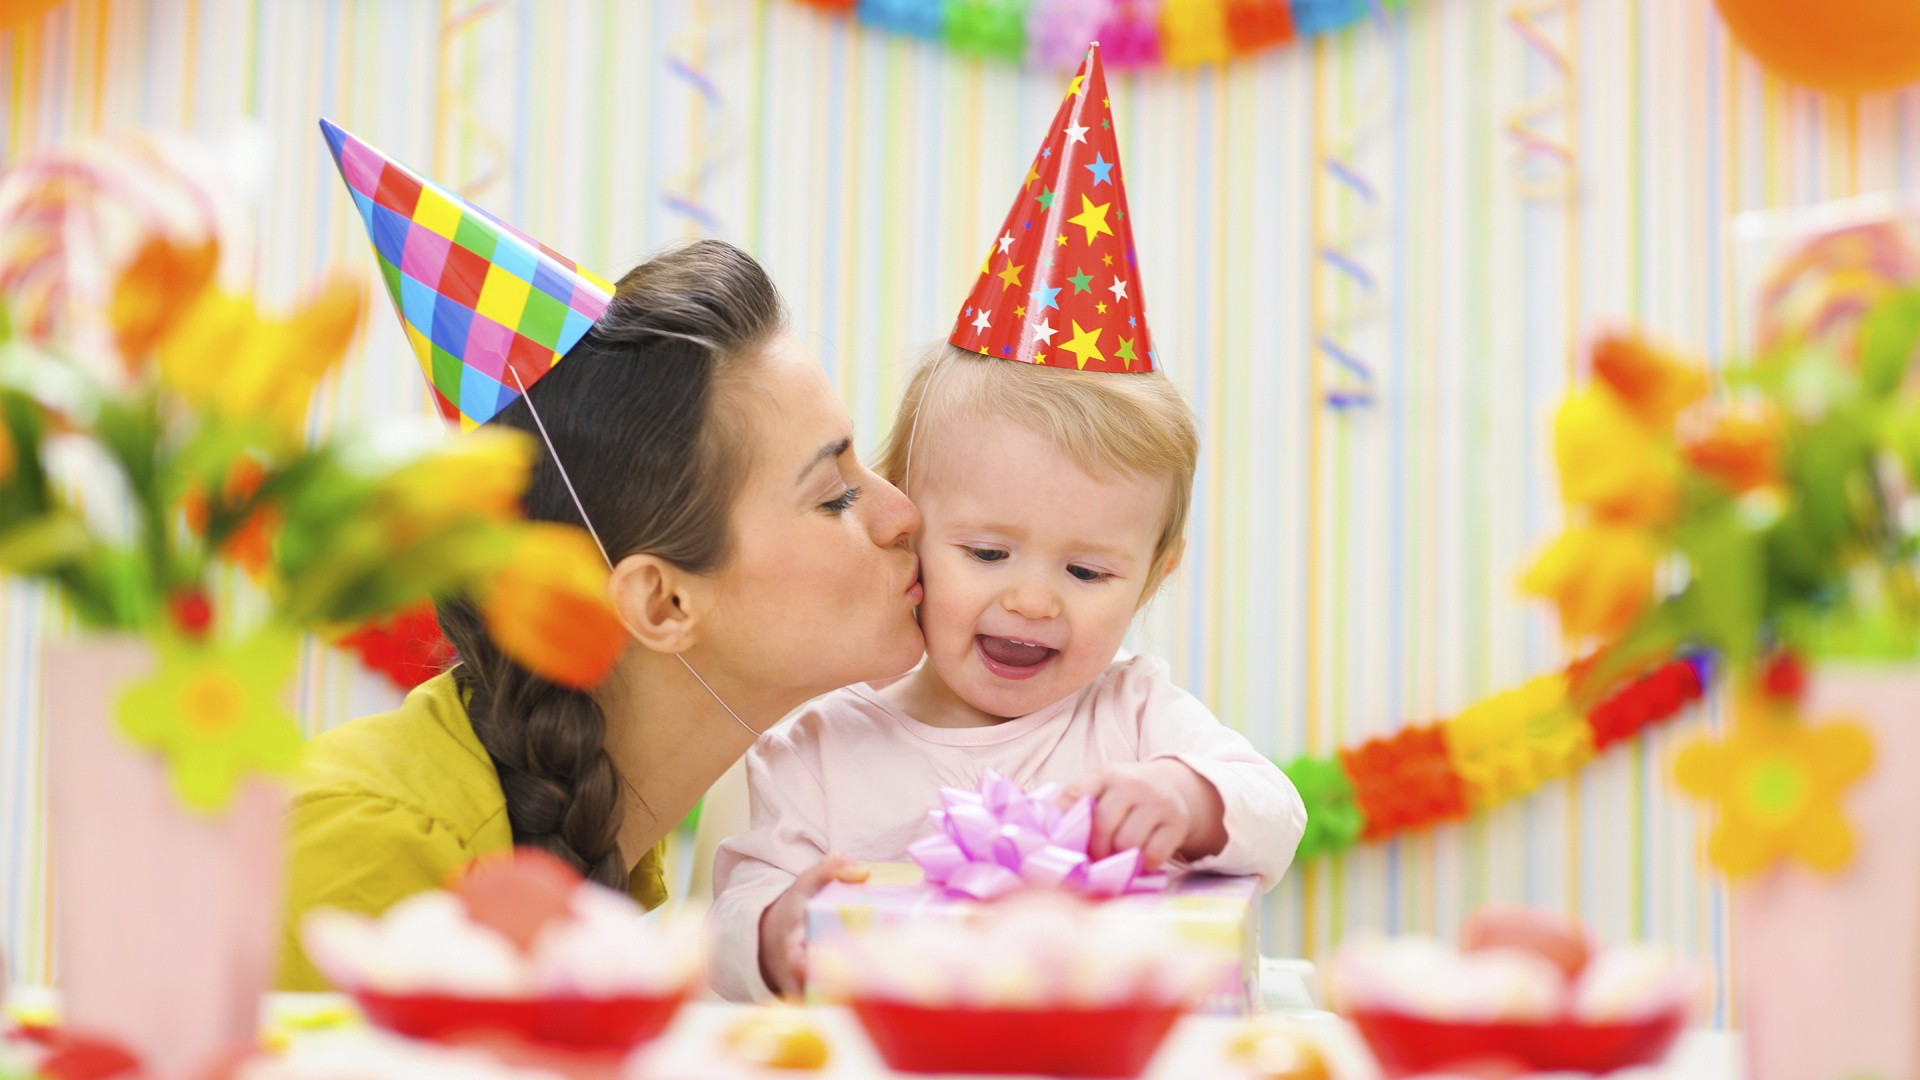 birthday wallpaper for baby ; free-hd-baby-birthday-celebrations-wallpapers-download